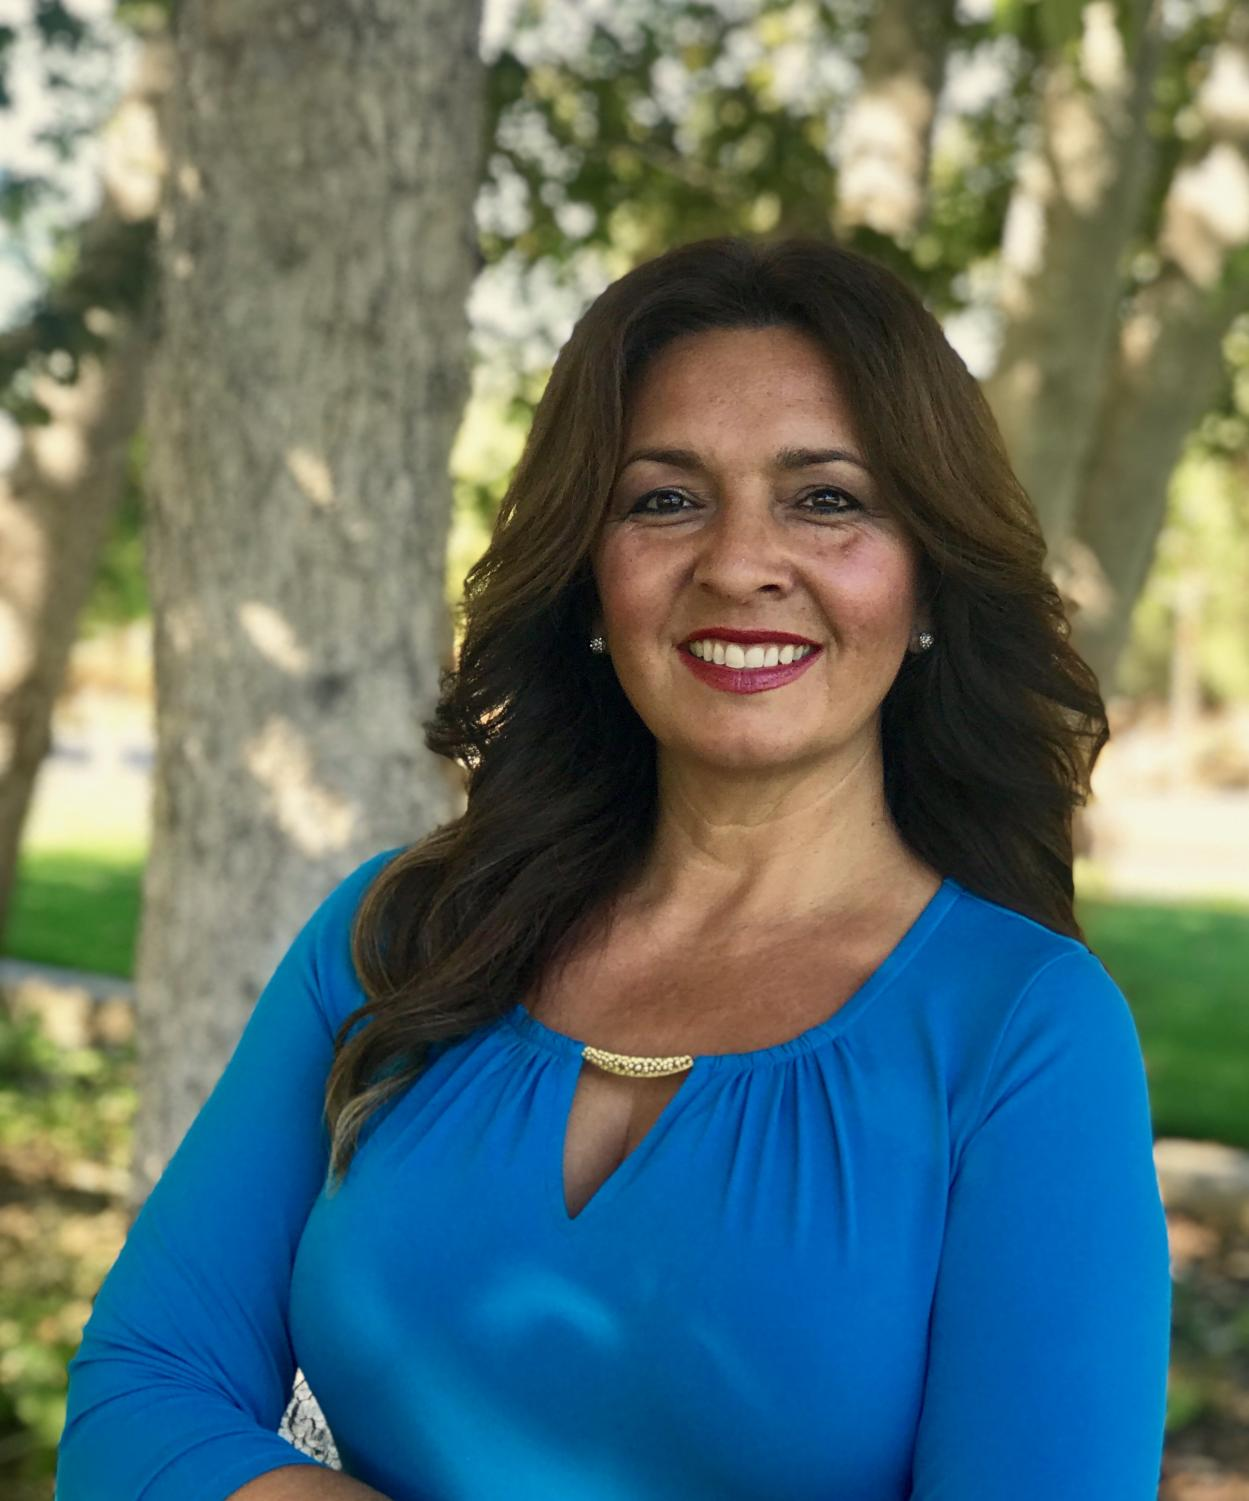 Mesa alum Bertha Hernandez became the first Latina elected president of the San Diego chapter of the American Society of Interior Designers.